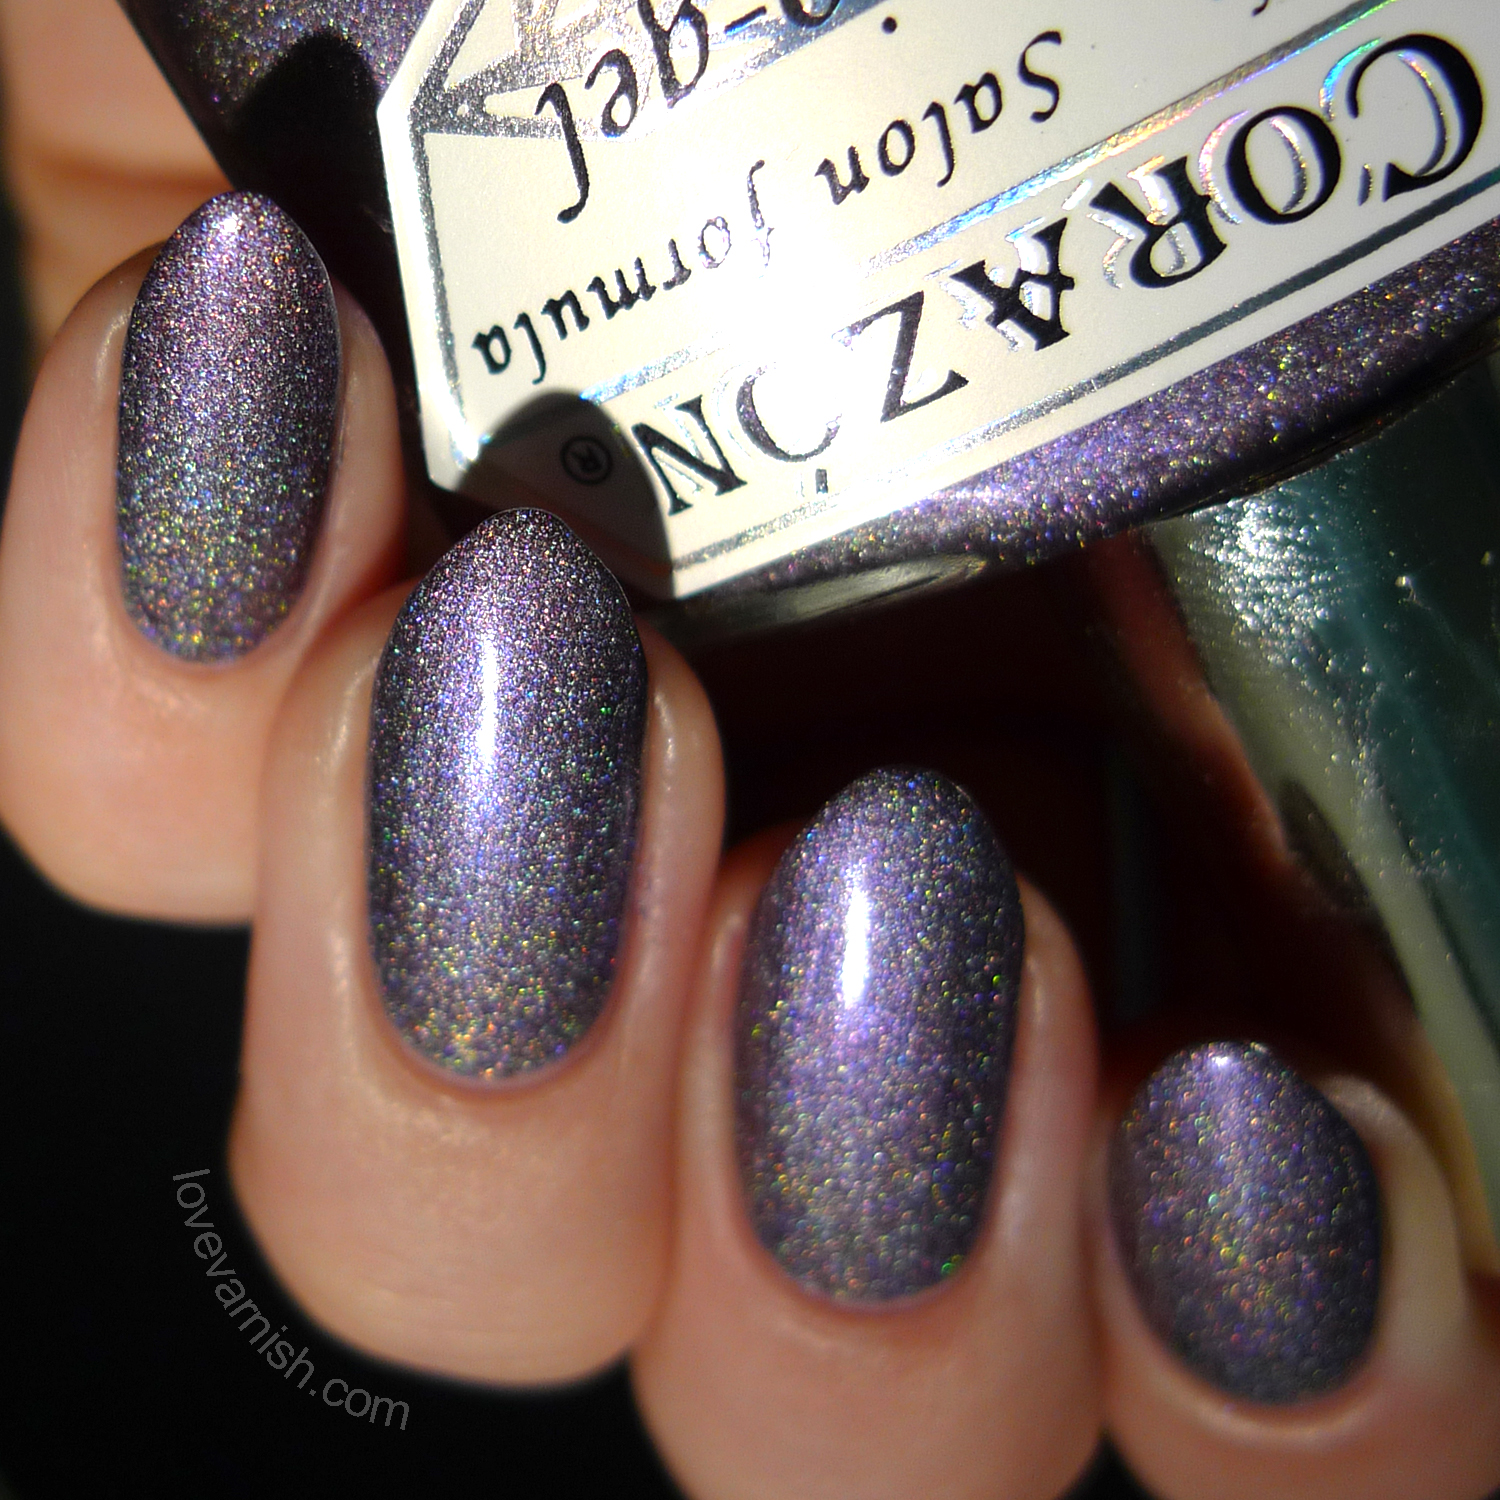 El Corazon Prisma 423-23 swatches and review